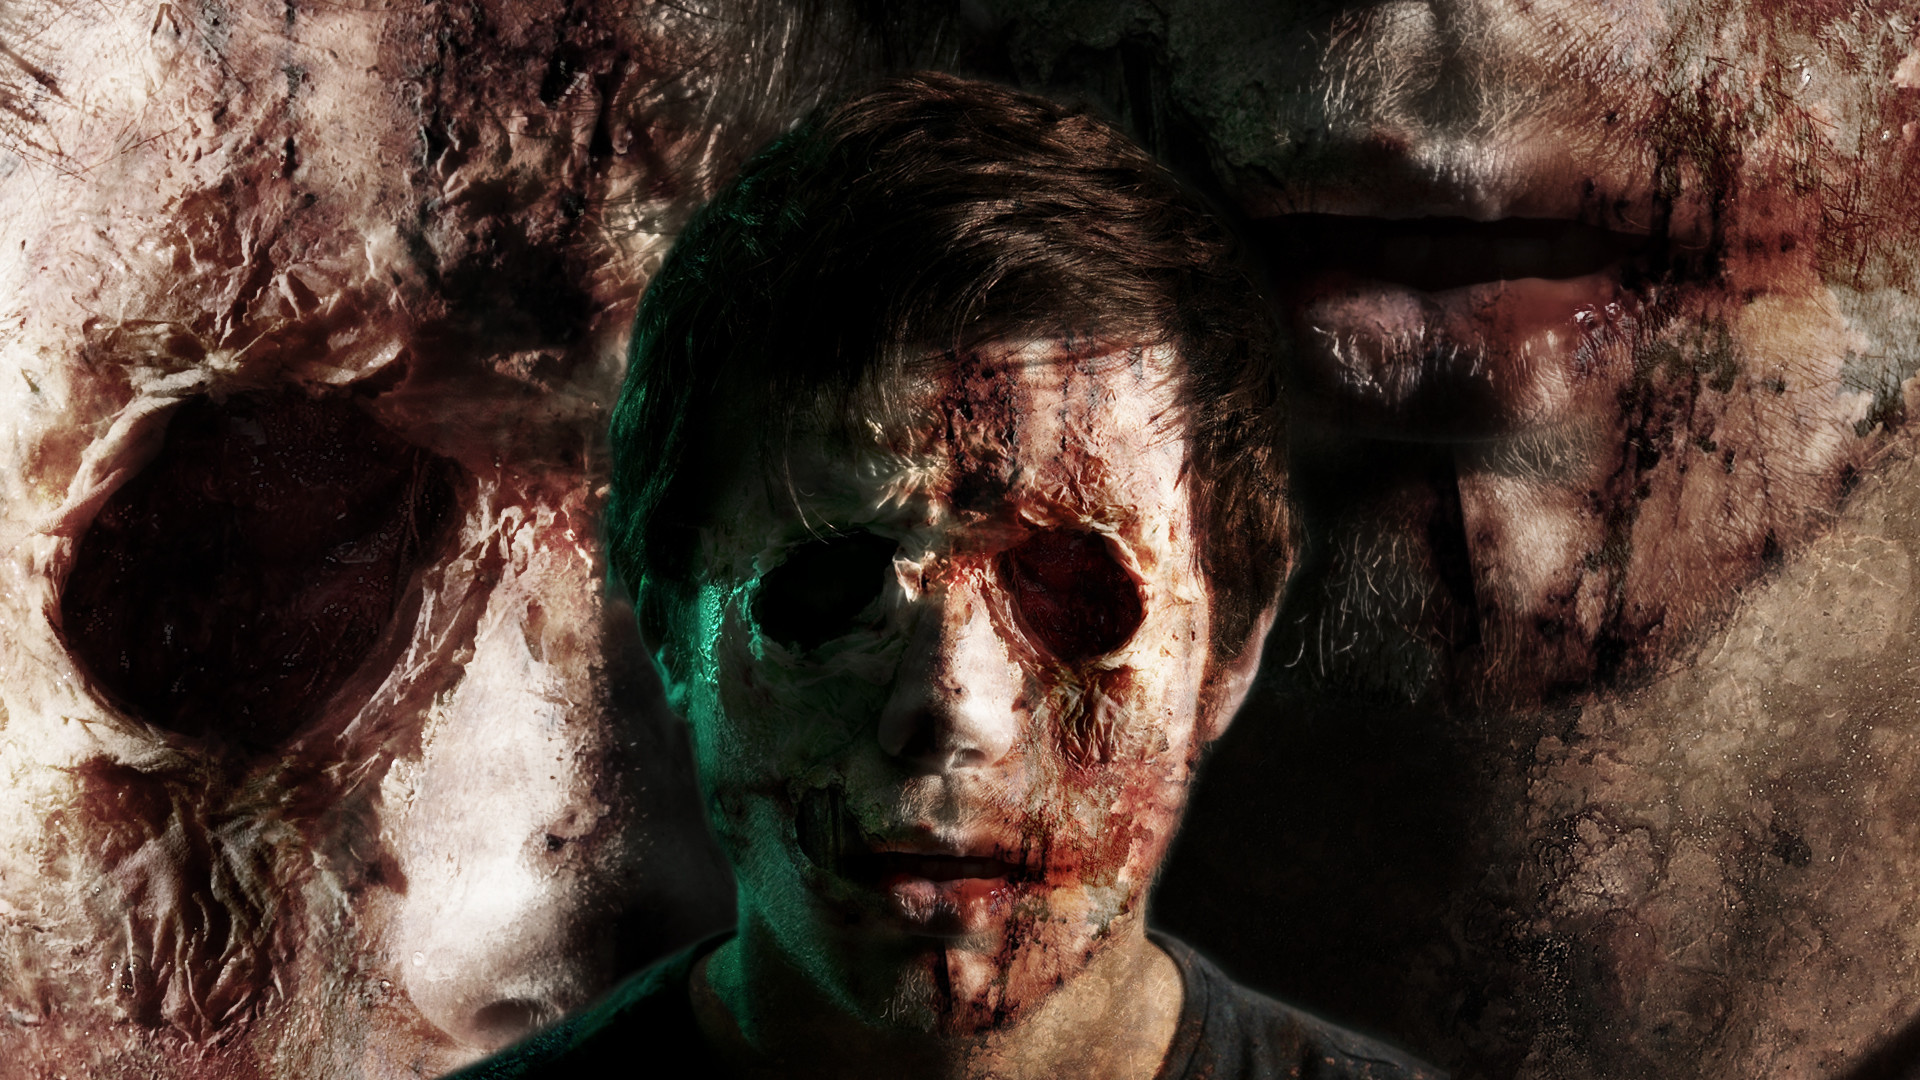 1920x1080 Hd Wallpapers Cool Zombie 1920 X 1080 856 Kb Jpeg | HD Wallpapers .